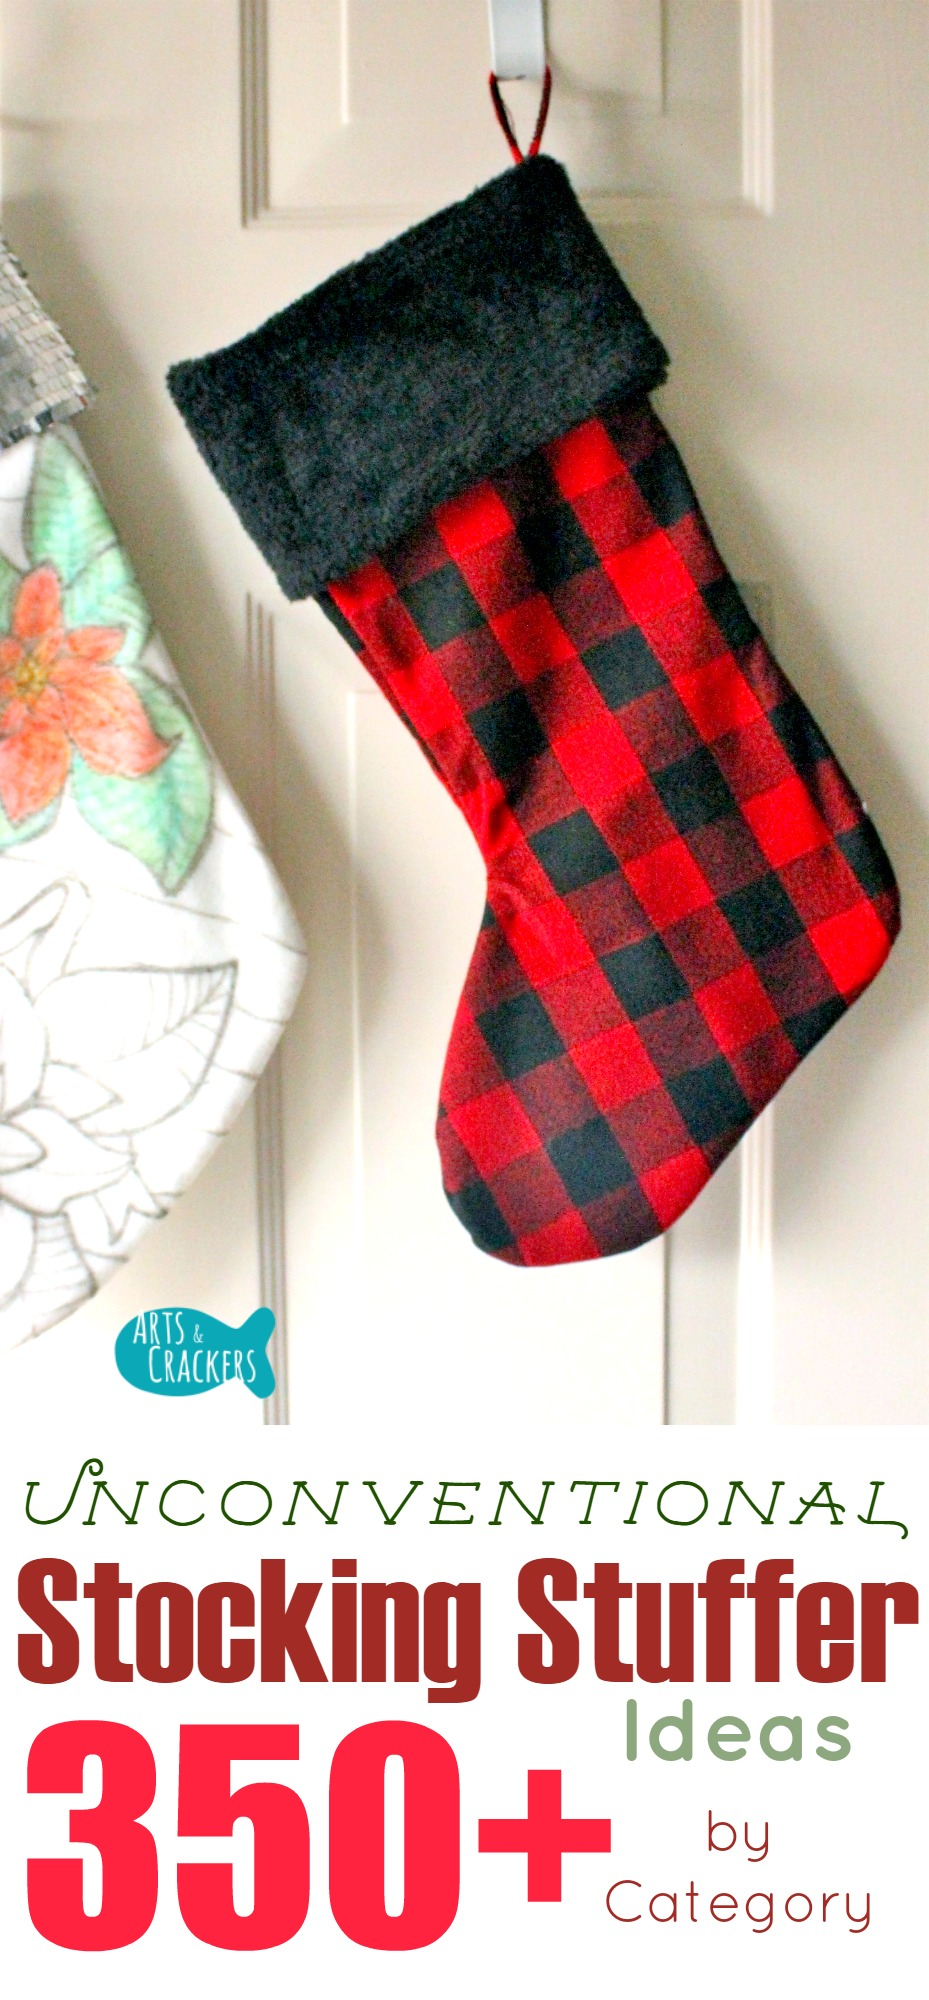 Unconventional Stocking Stuffer Ideas By Category